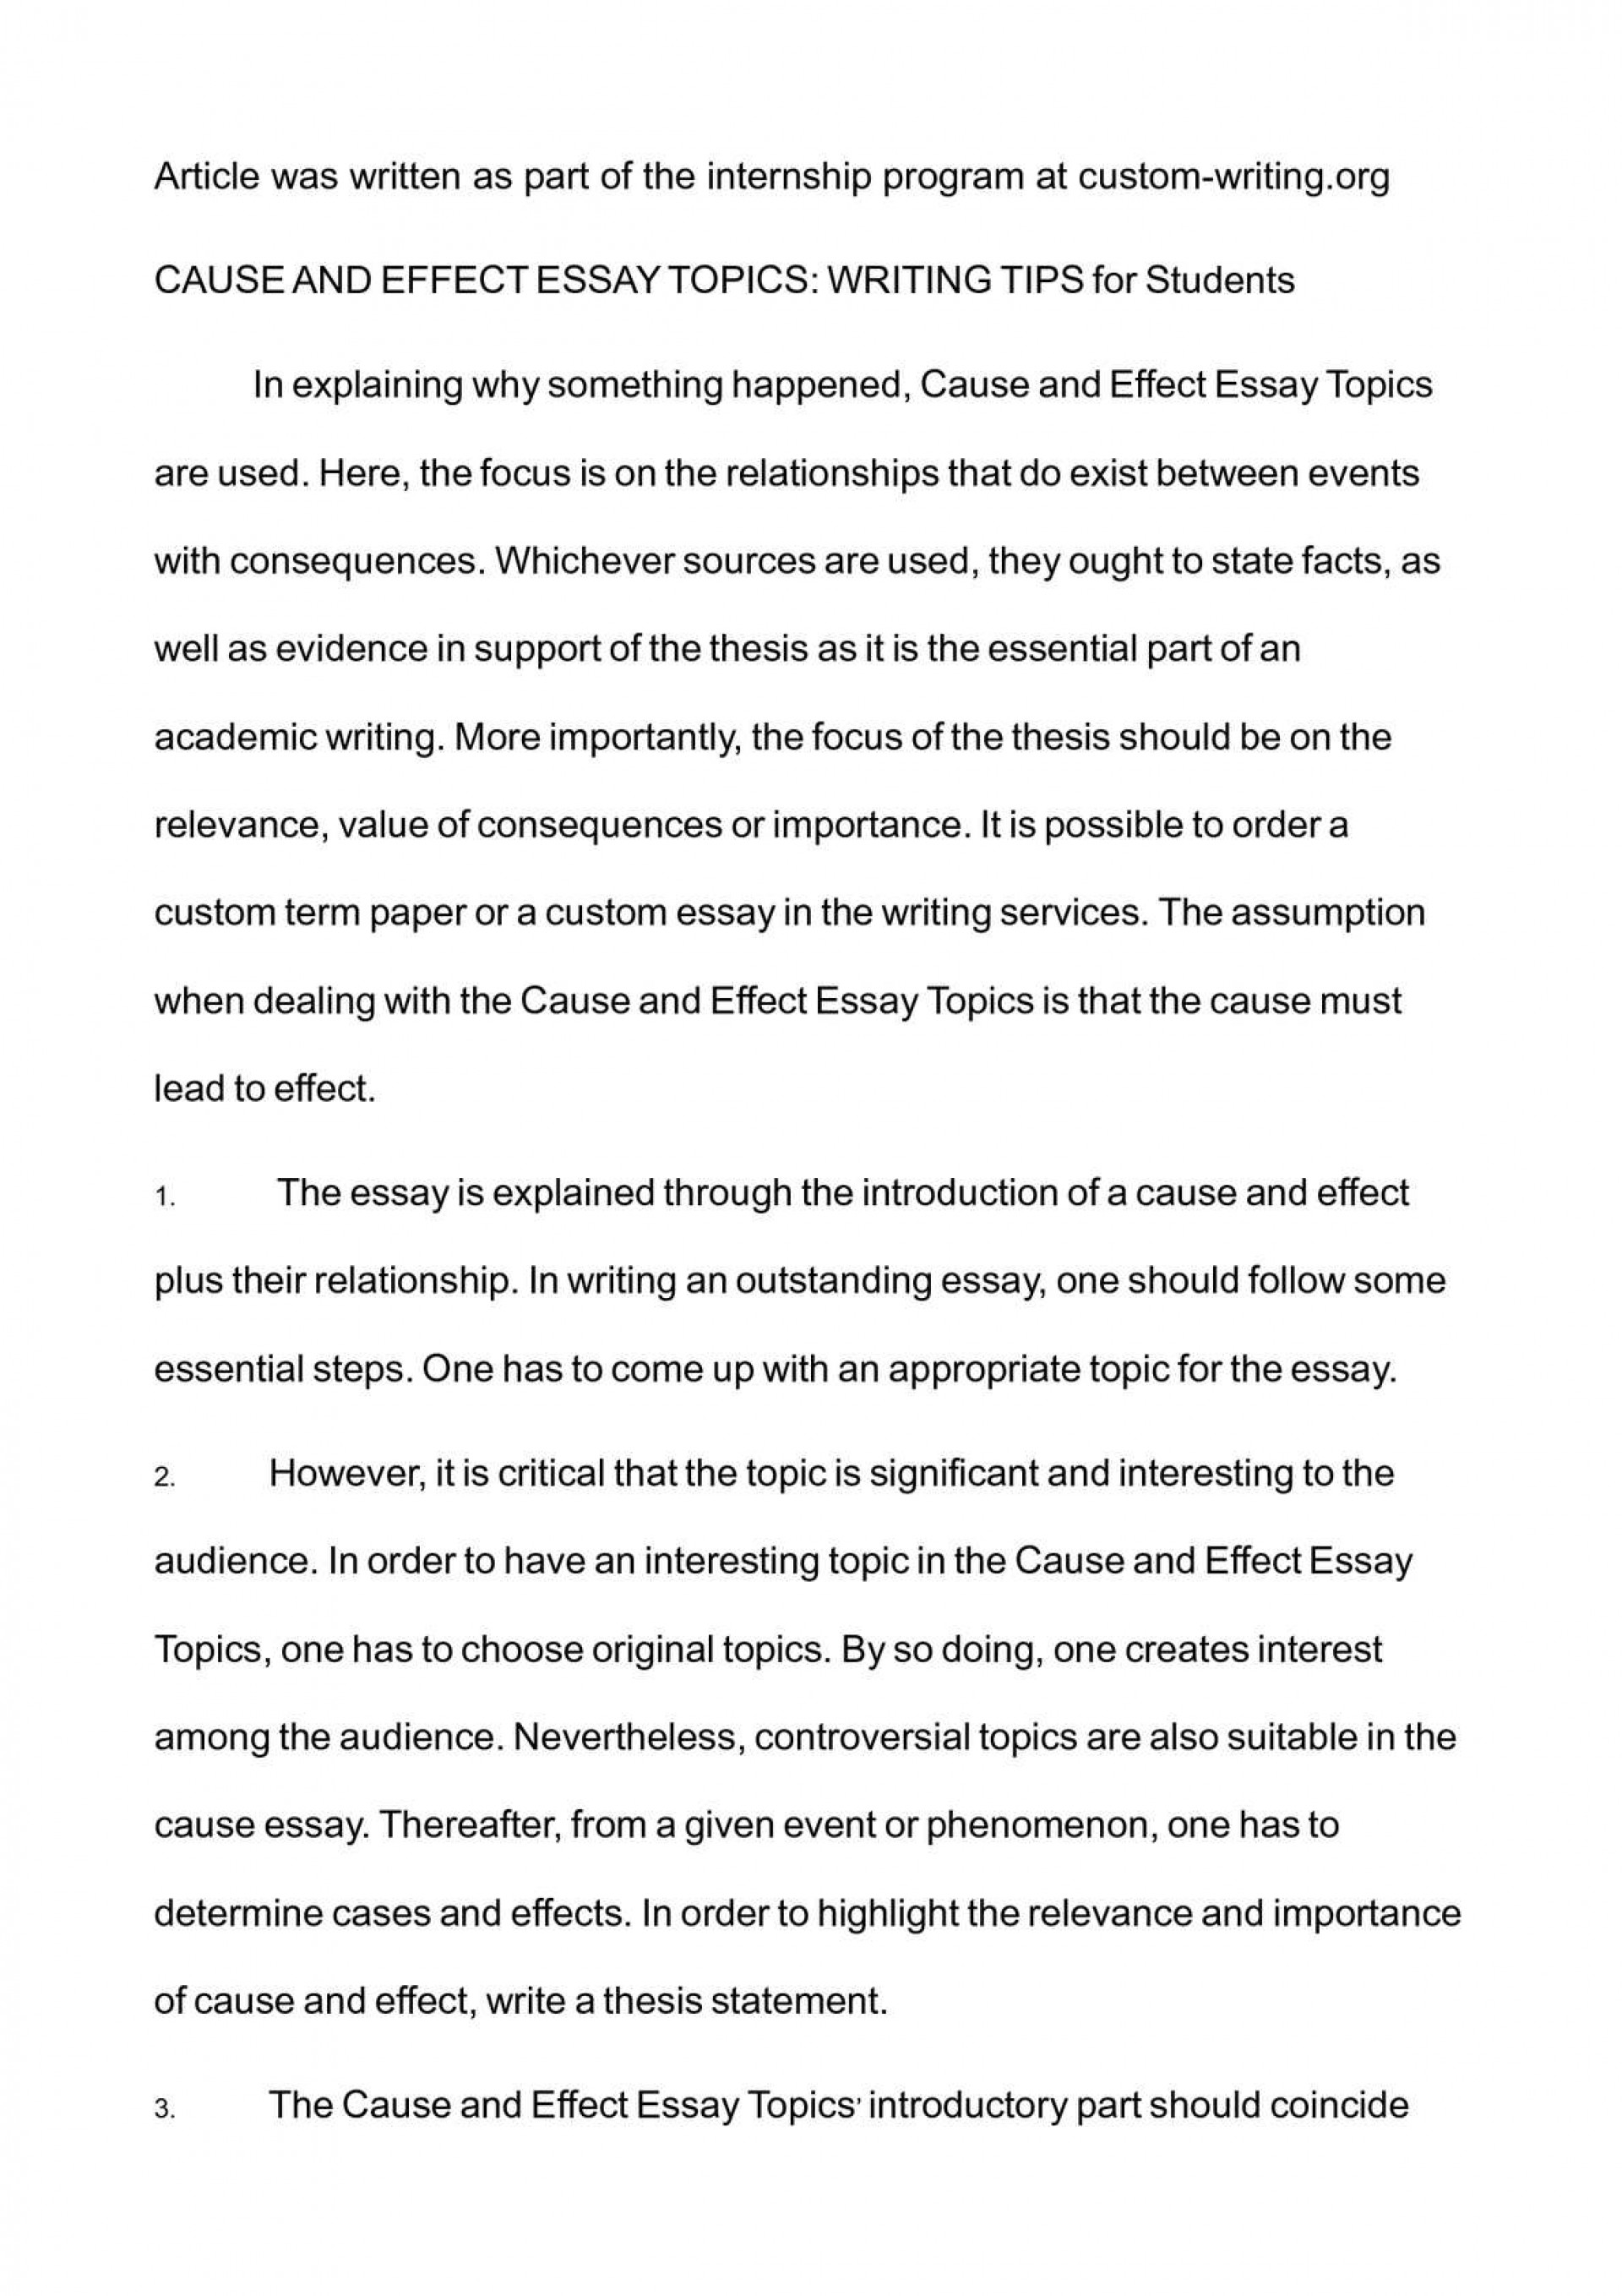 002 Essay Example P1 Cause And Effect Exceptional Topics Middle School Good For College 1920